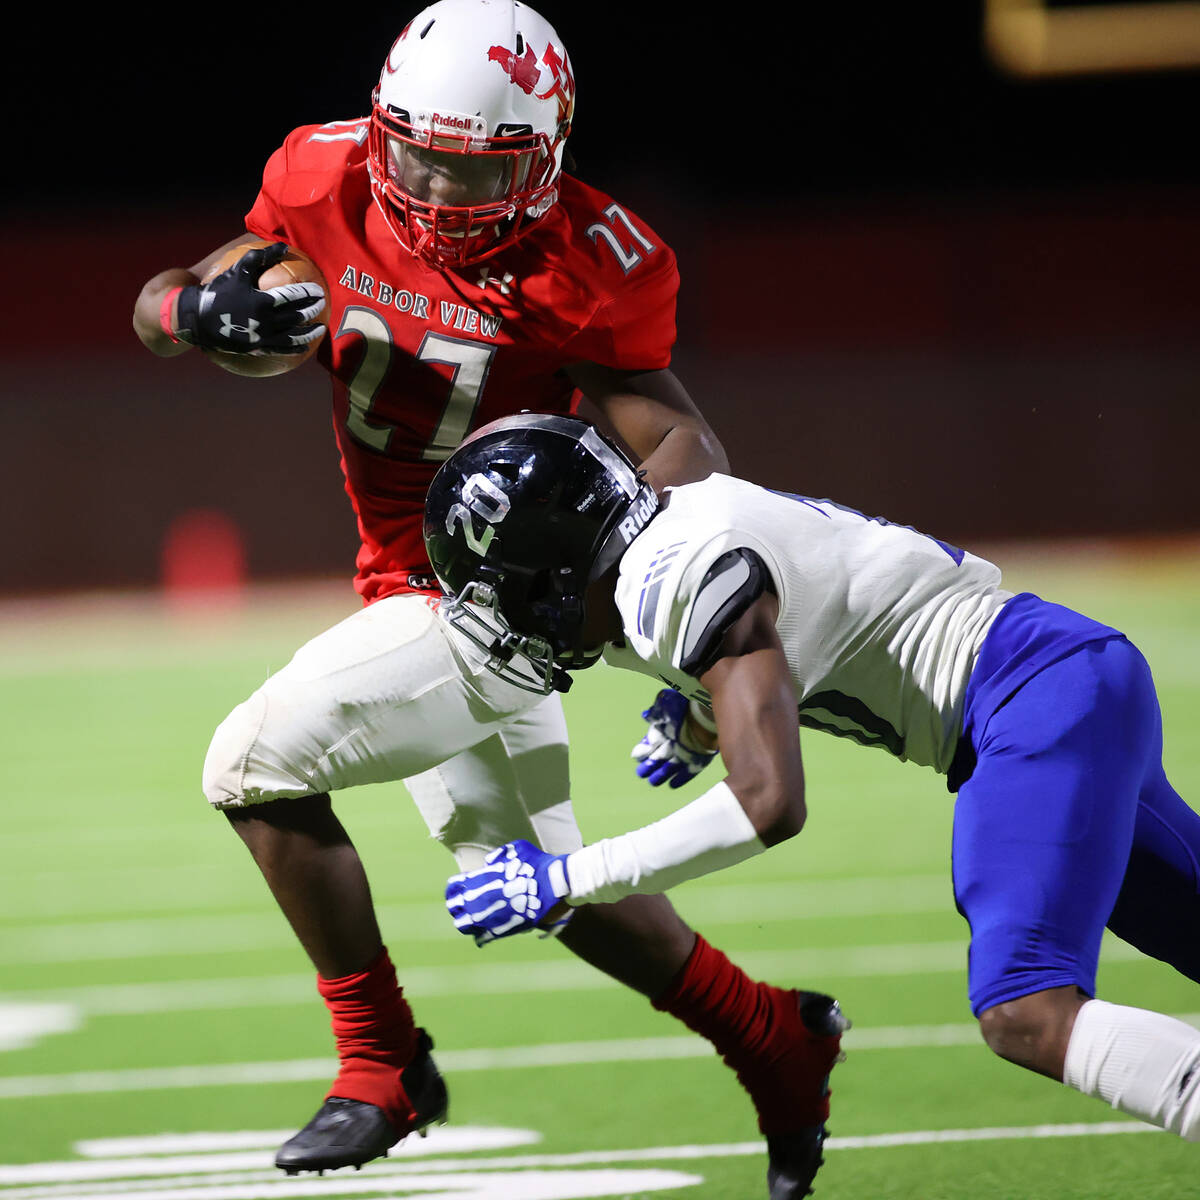 Arbor View's Makhai Donaldson (27) runs the ball before getting tackled by Desert Pines Isaiah ...